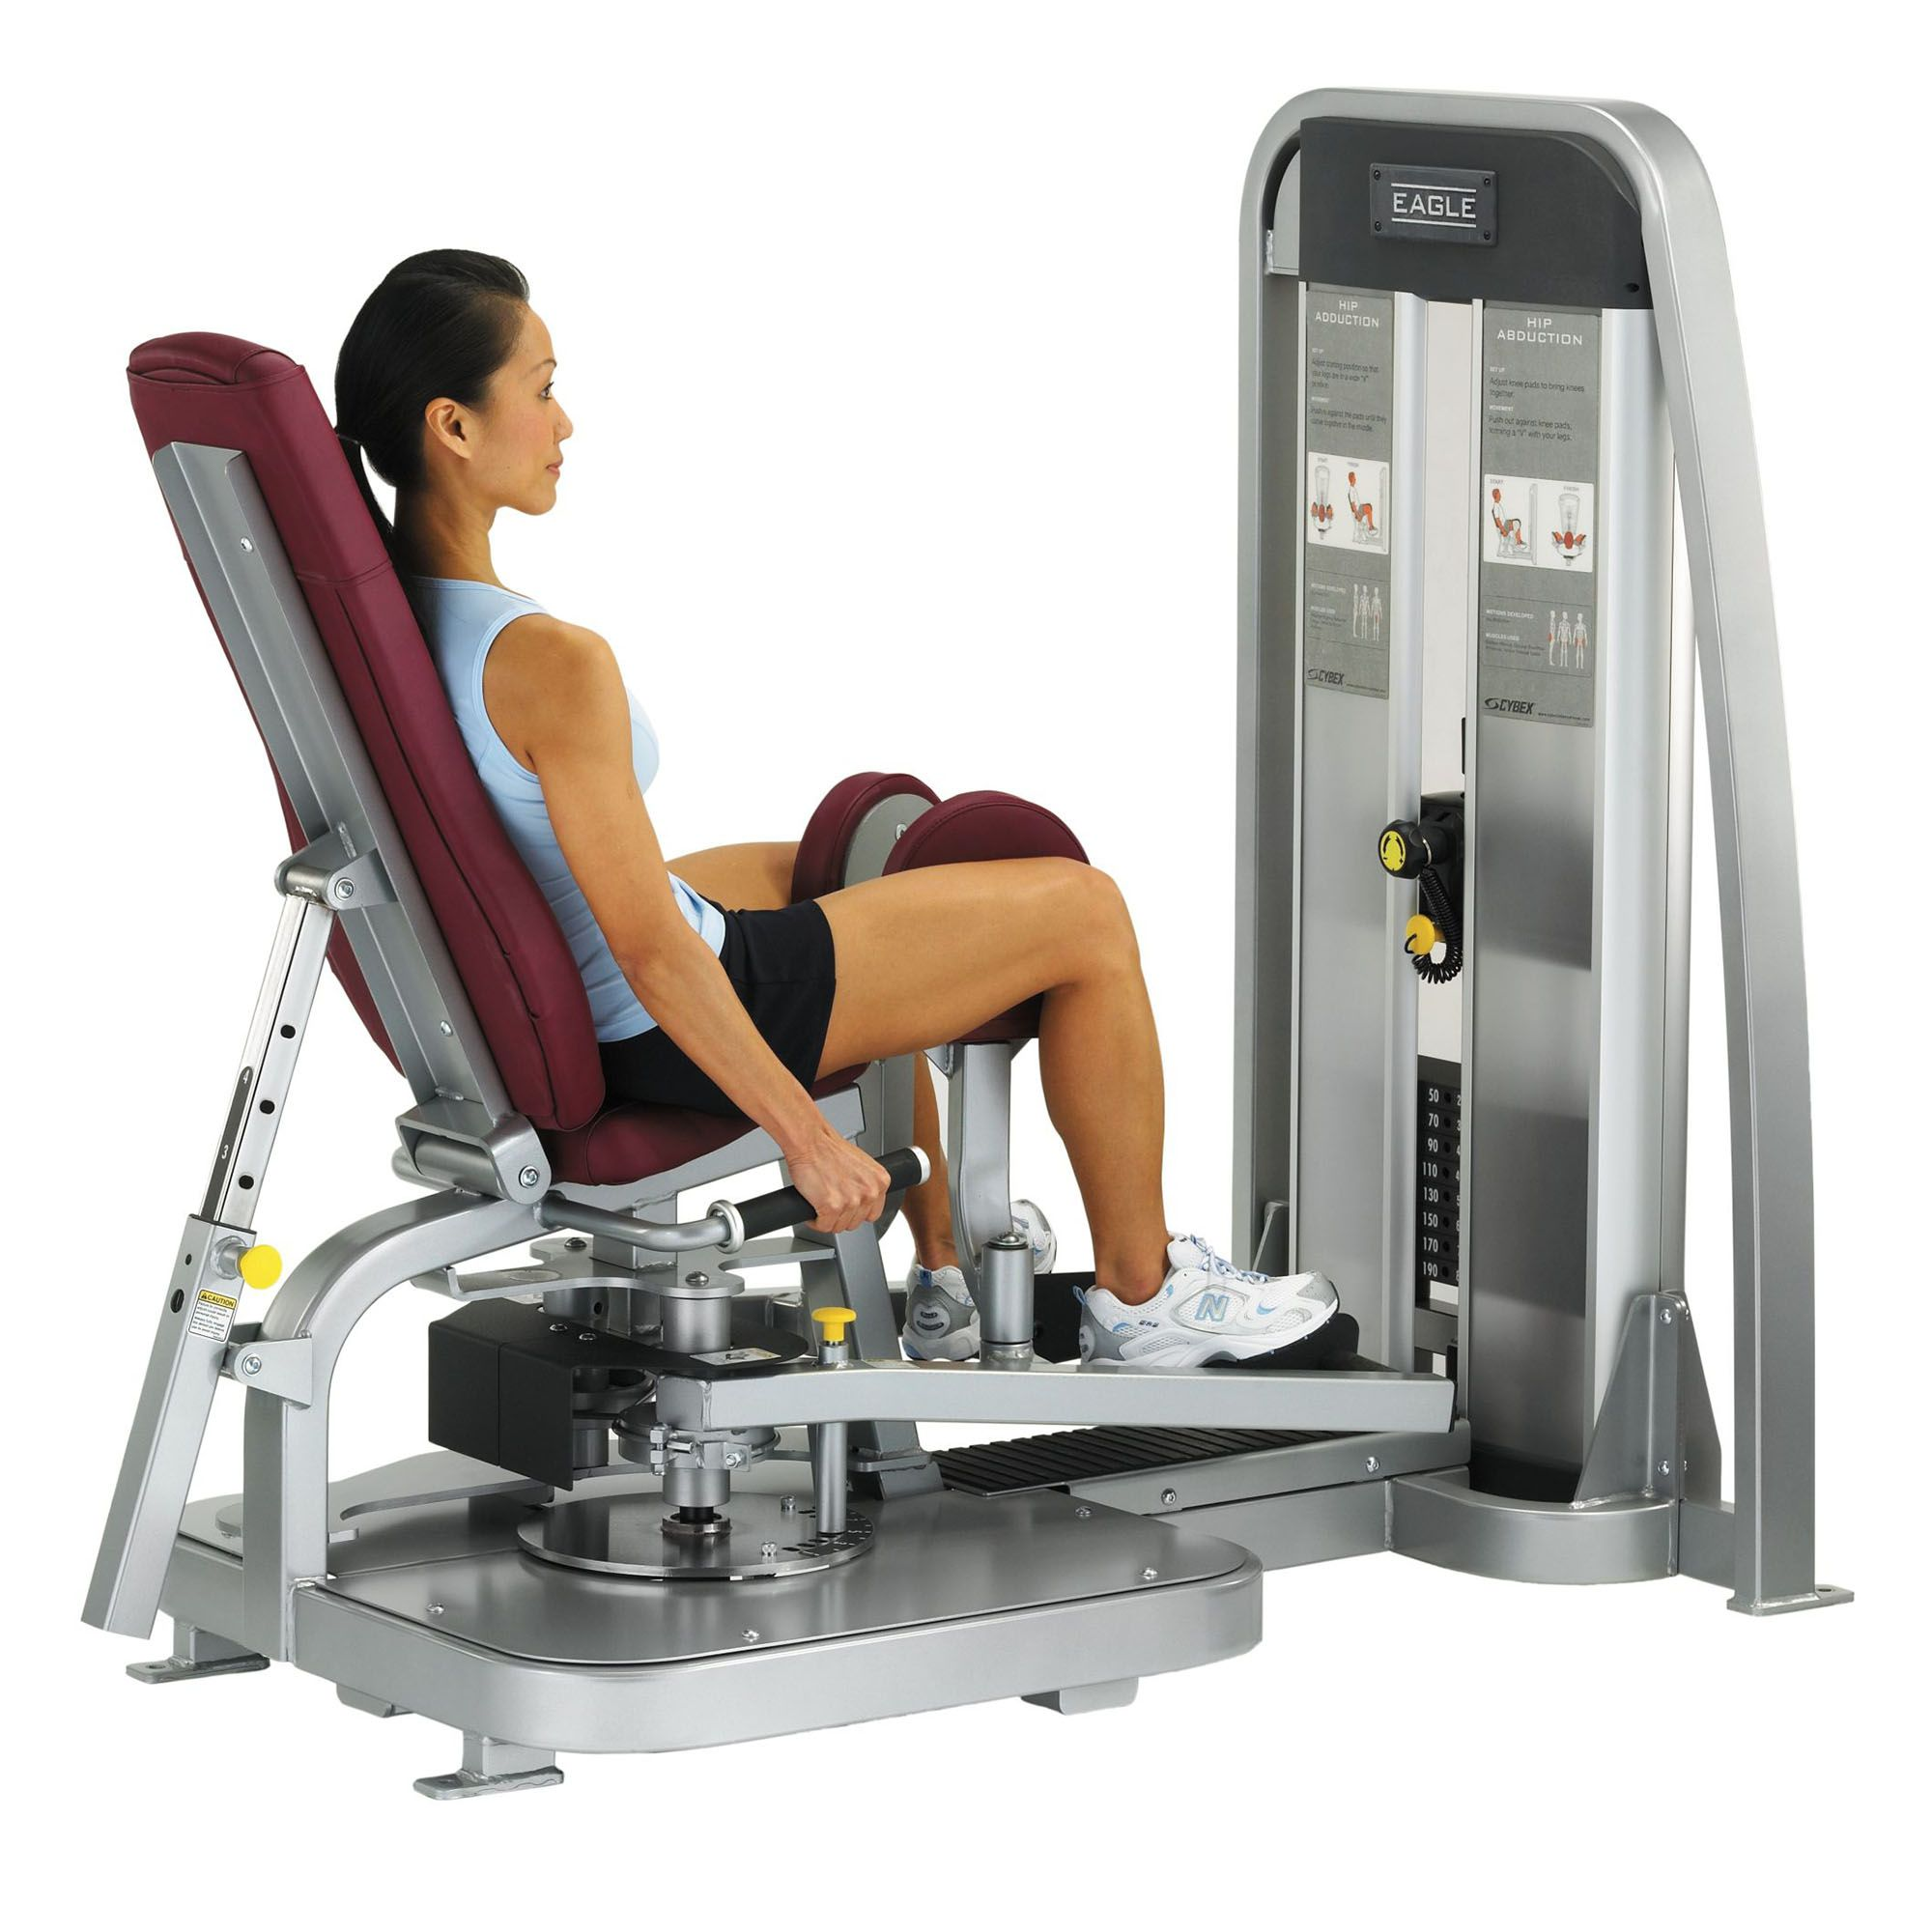 pilates chair for sale folding camping chairs cybex eagle hip ab and ad - sweatband.com